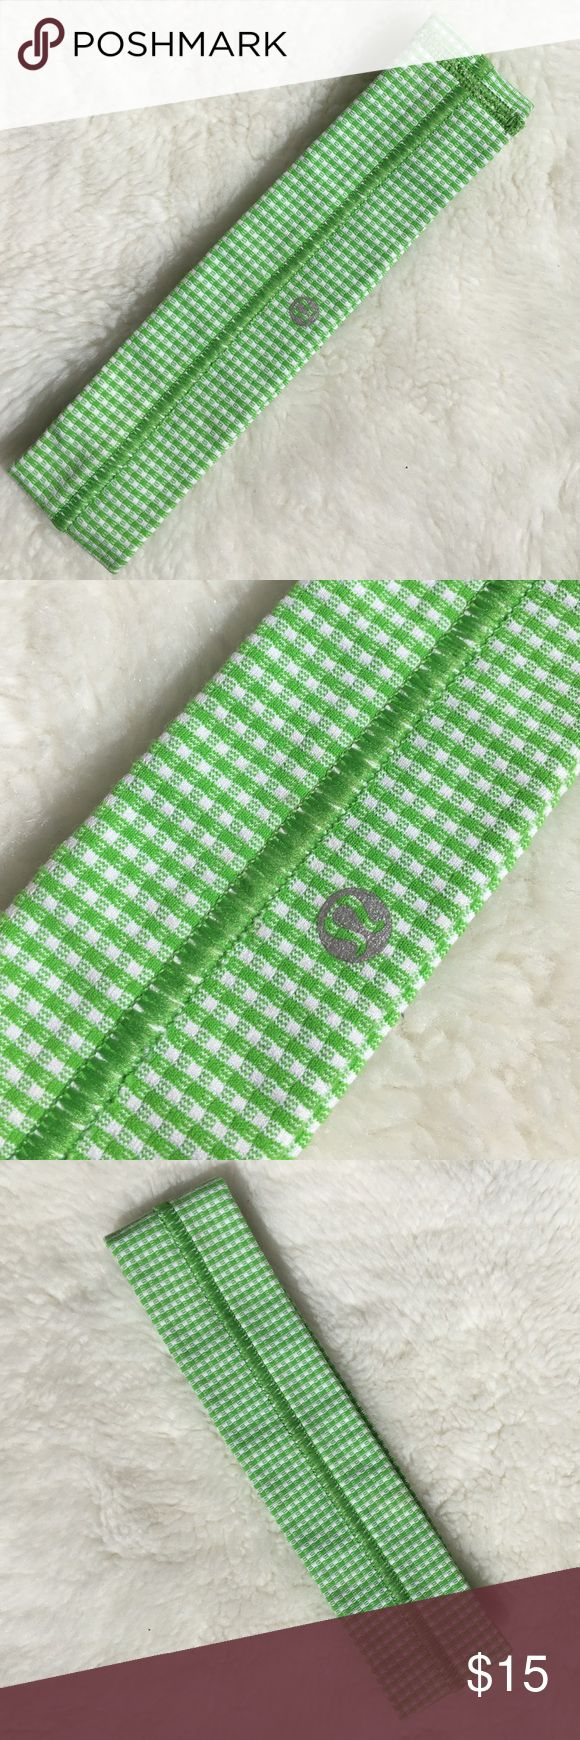 Lululemon Green & White Headband New without tag Lululemon Green & White Headband. Please look at pictures for better reference. Happy shopping! lululemon athletica Accessories Hair Accessories